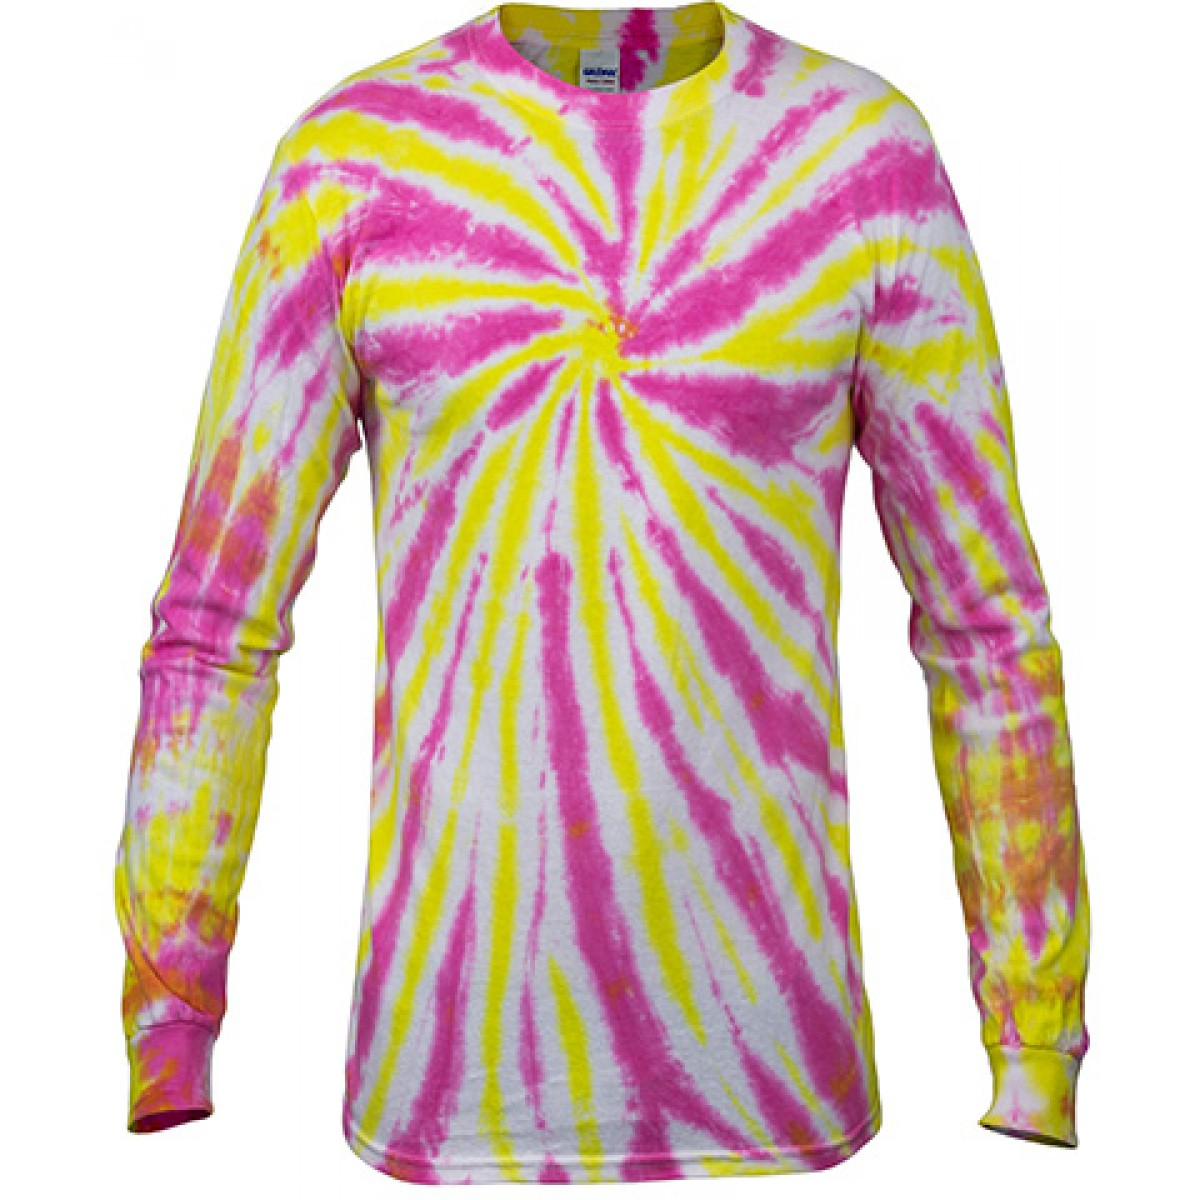 Multi Color Tie-Dye Long Sleeve Shirt -Pink-3XL